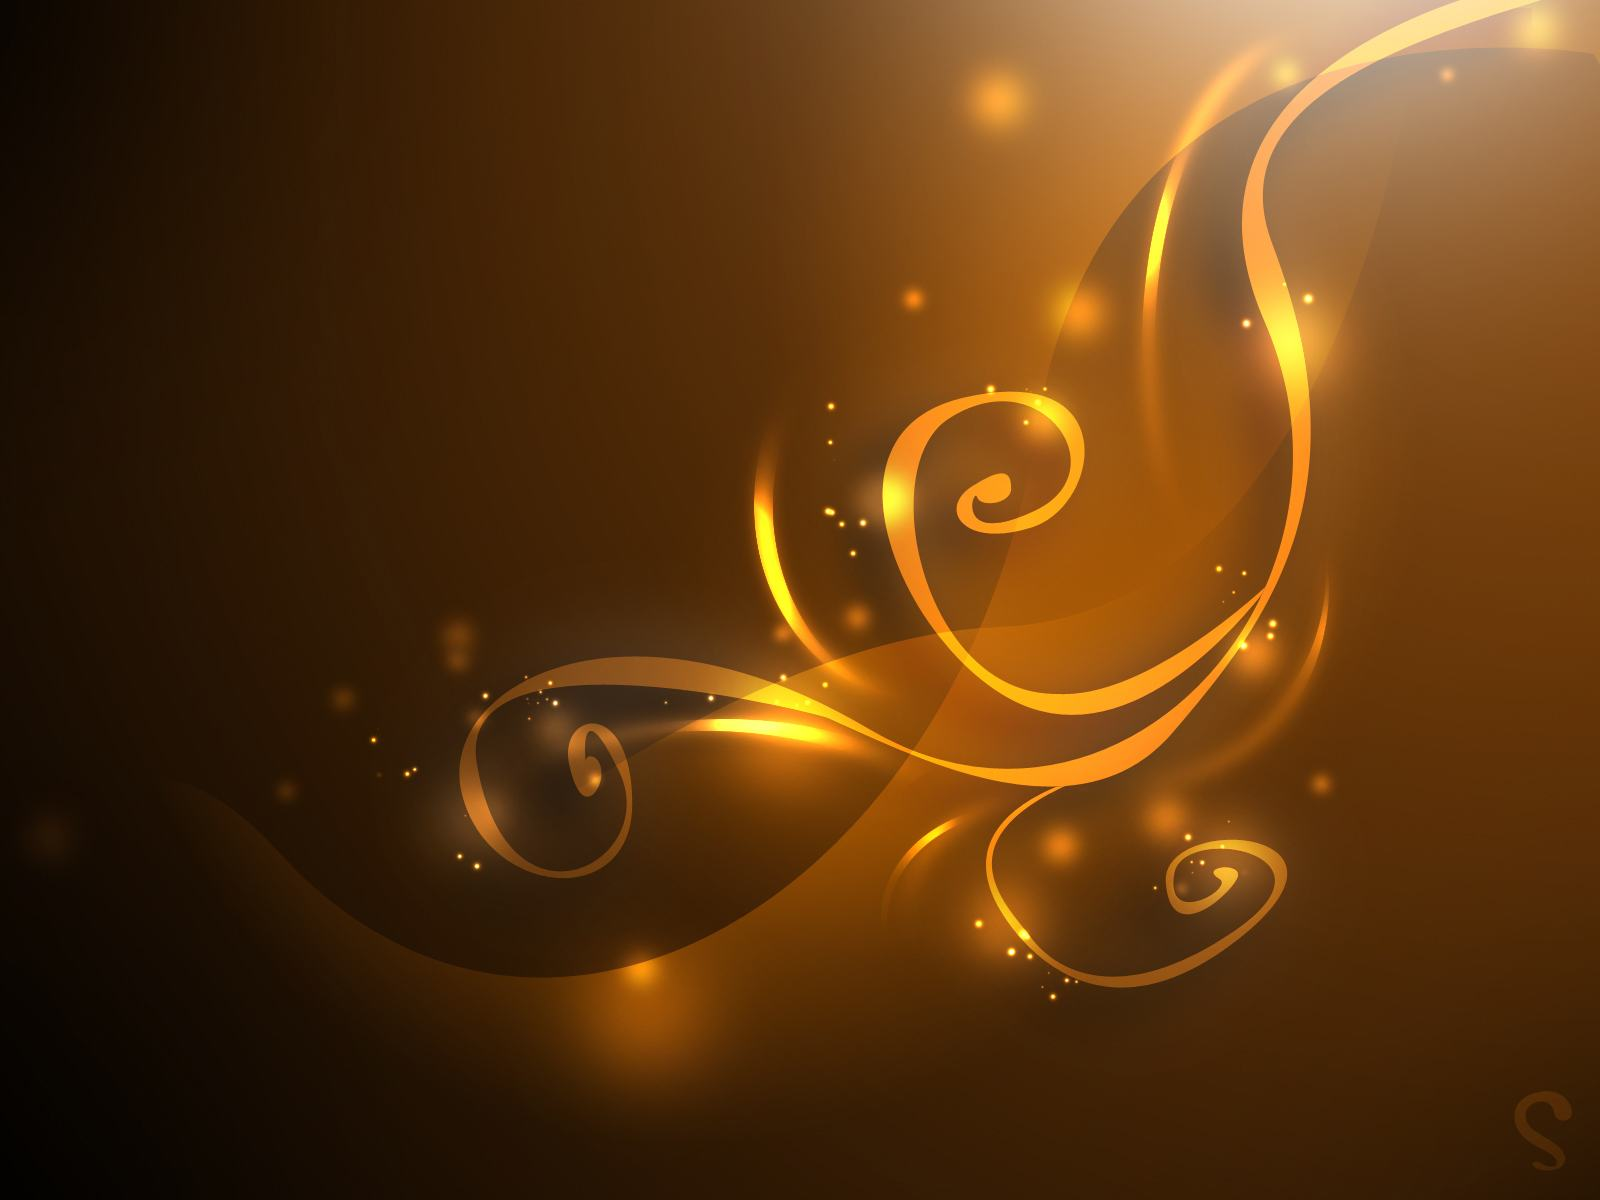 Gold Wallpaper · Gold Wallpaper ...